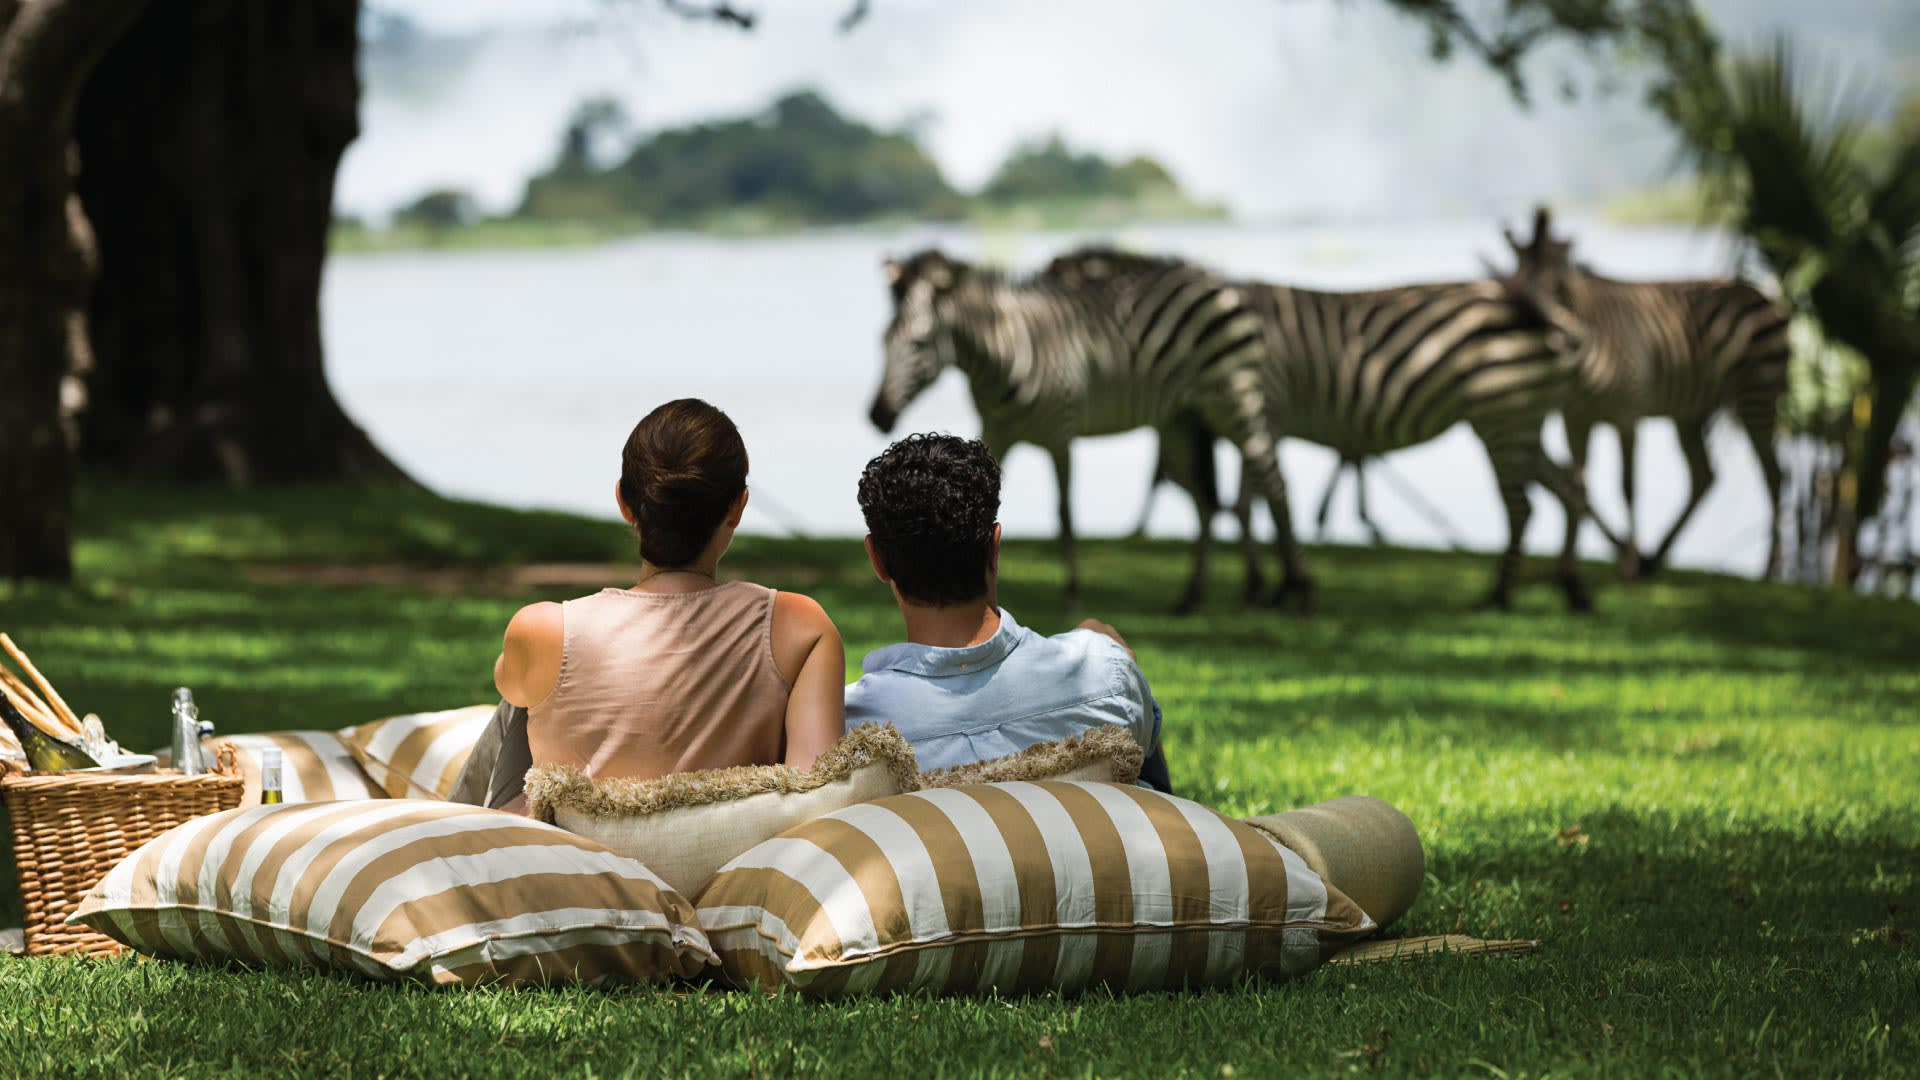 https://assets.anantara.com/image/upload/q_auto,f_auto/media/minor/anantara/images/royal-livingstone-by-anantara/the-resort/desktop-banner/royal_livingstone_by_anantara_header_1920x1080.jpg